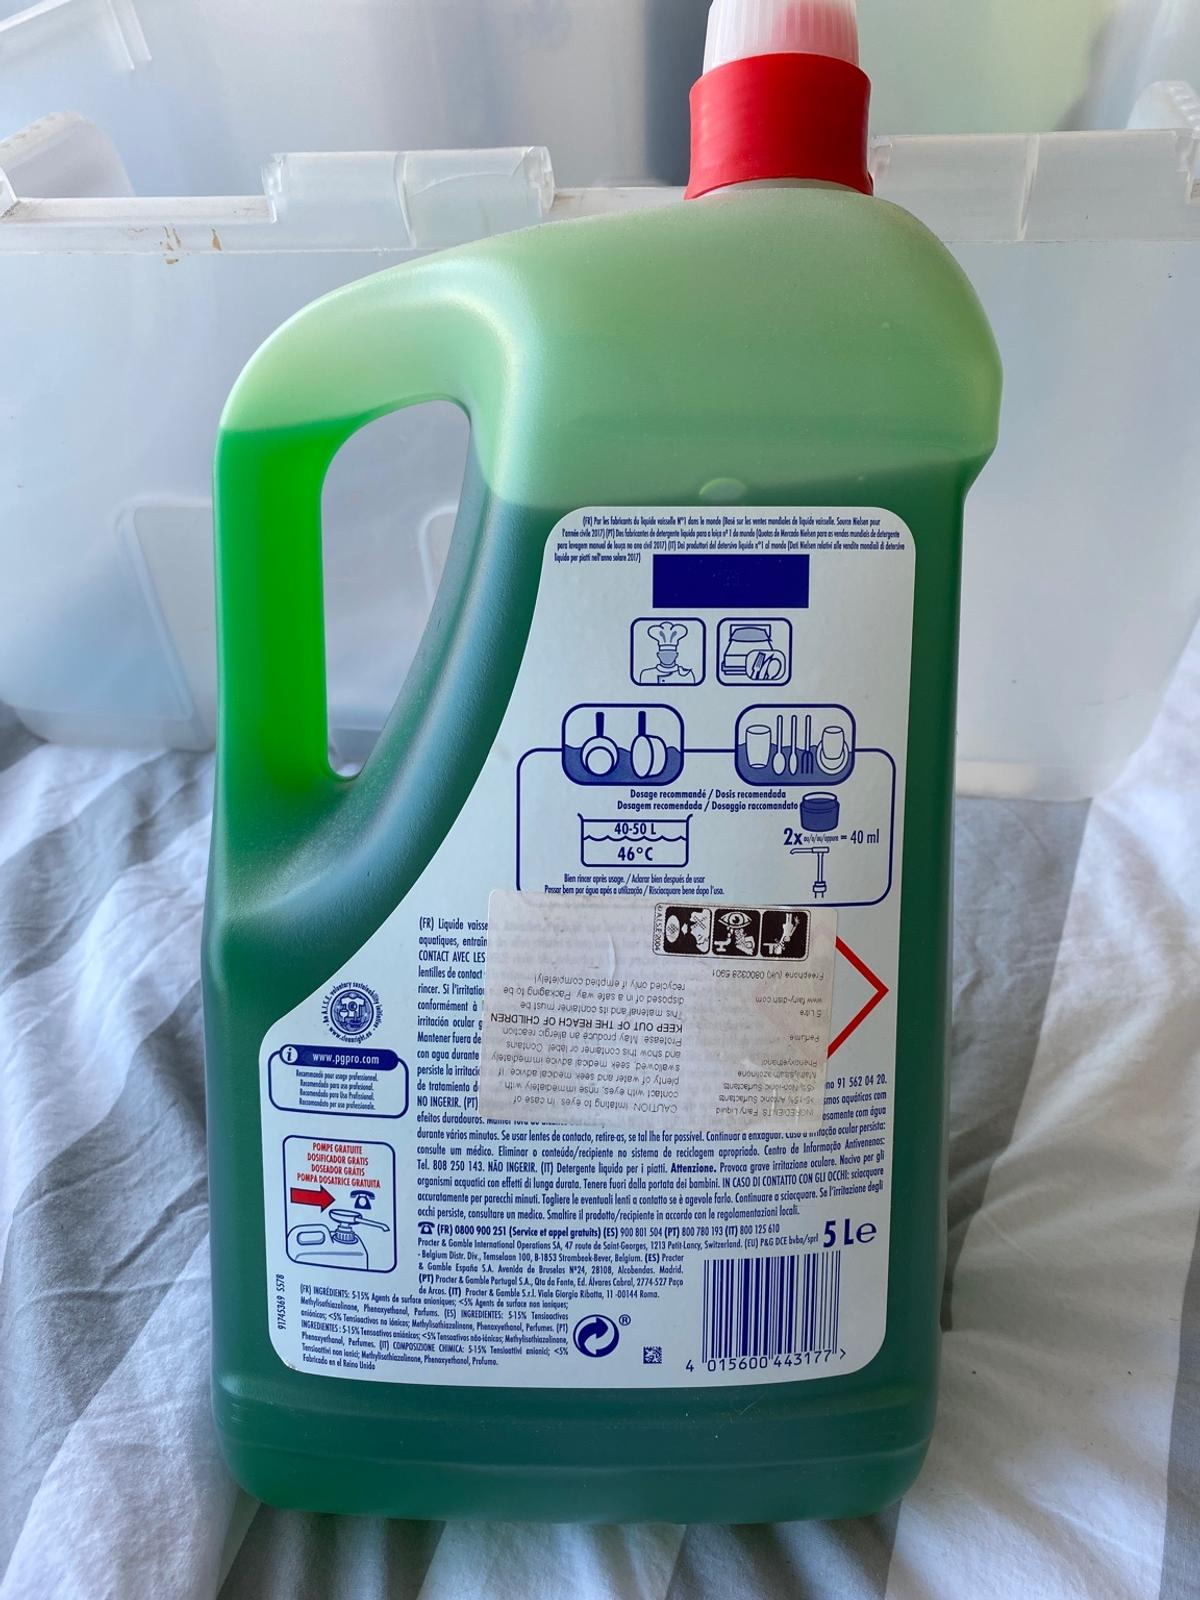 As stated a 5 Litre bottle unopened. Brand new. Good condition. No brakes. Good for washing up. Lots of uses.